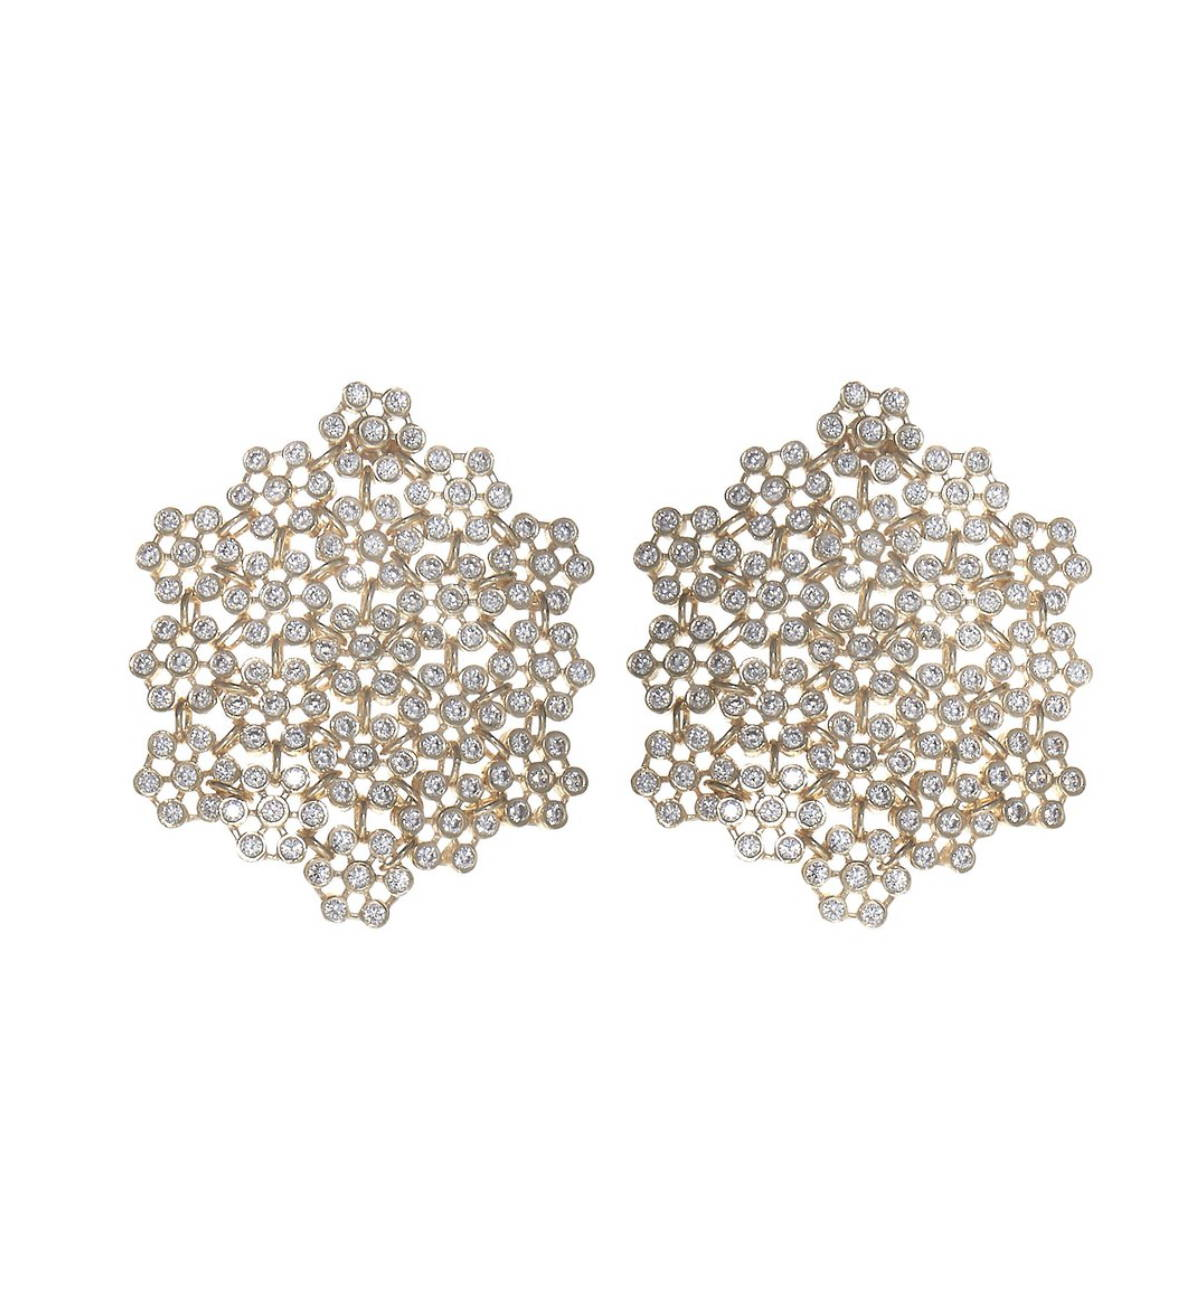 soru jewellery marianna earrings , soru crystal earrings